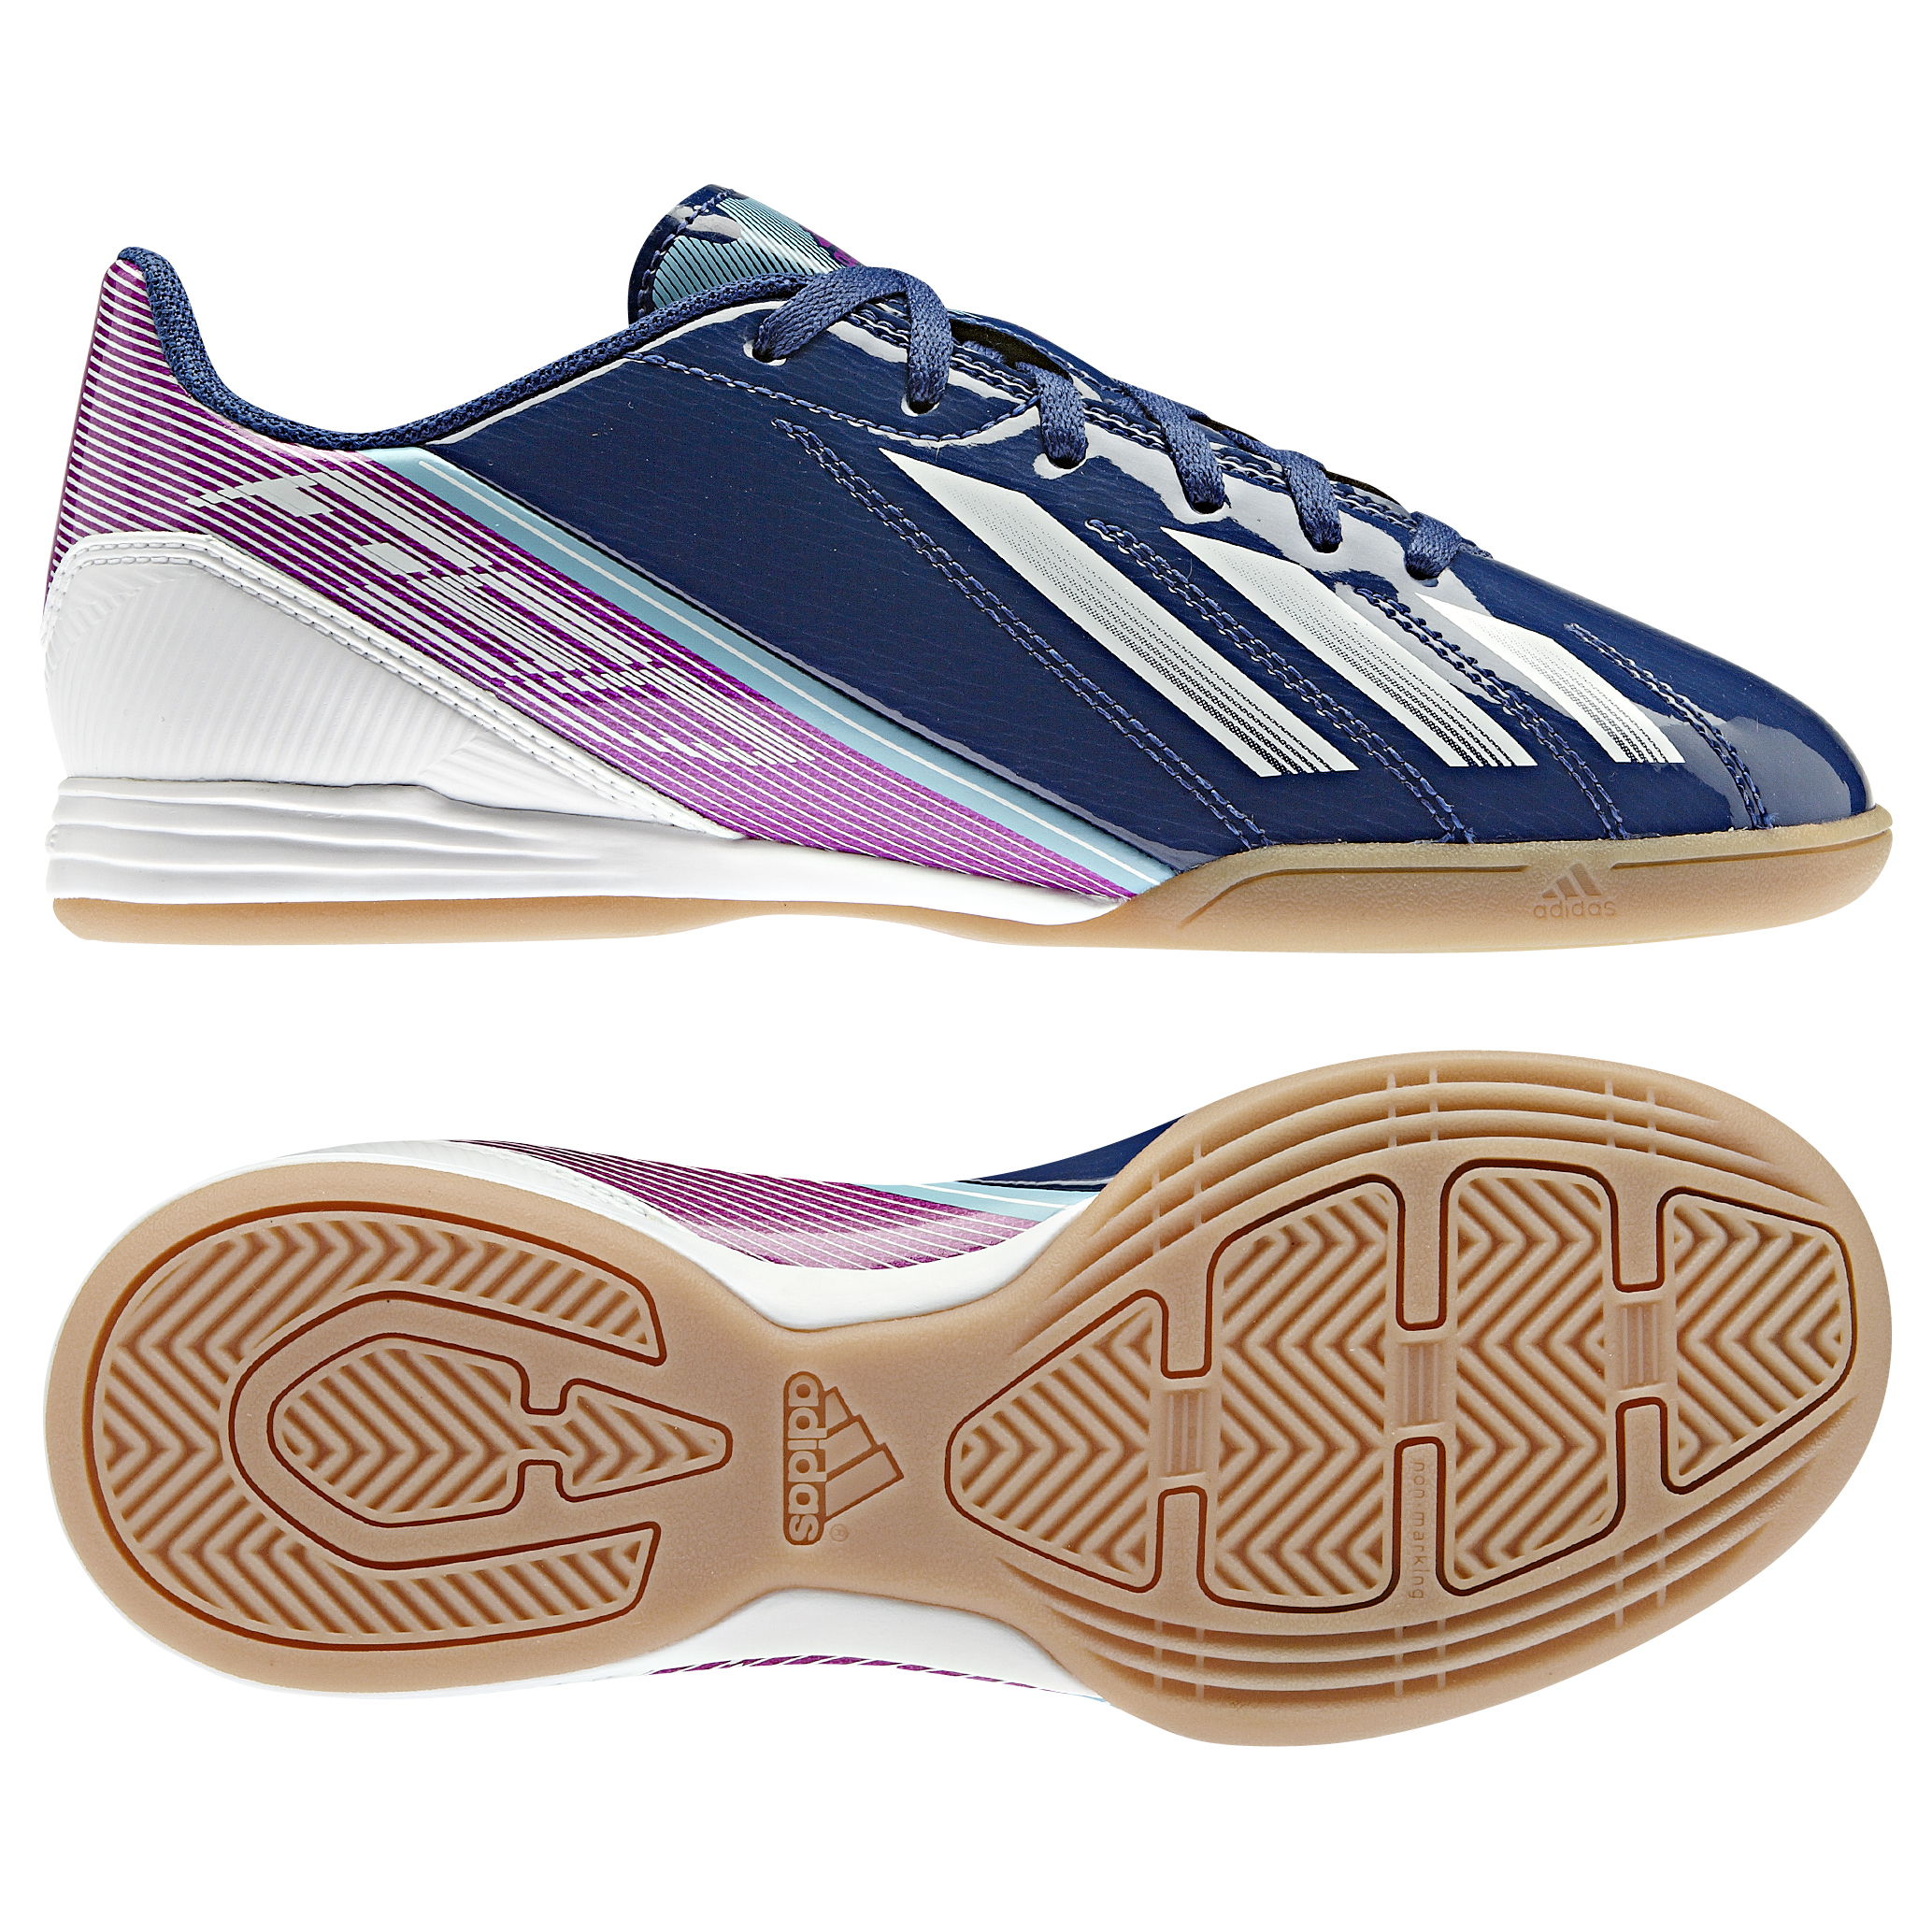 adidas AdiZero F10 Indoor Trainers - Dark Blue/Running White/Vivid Pink - Kids